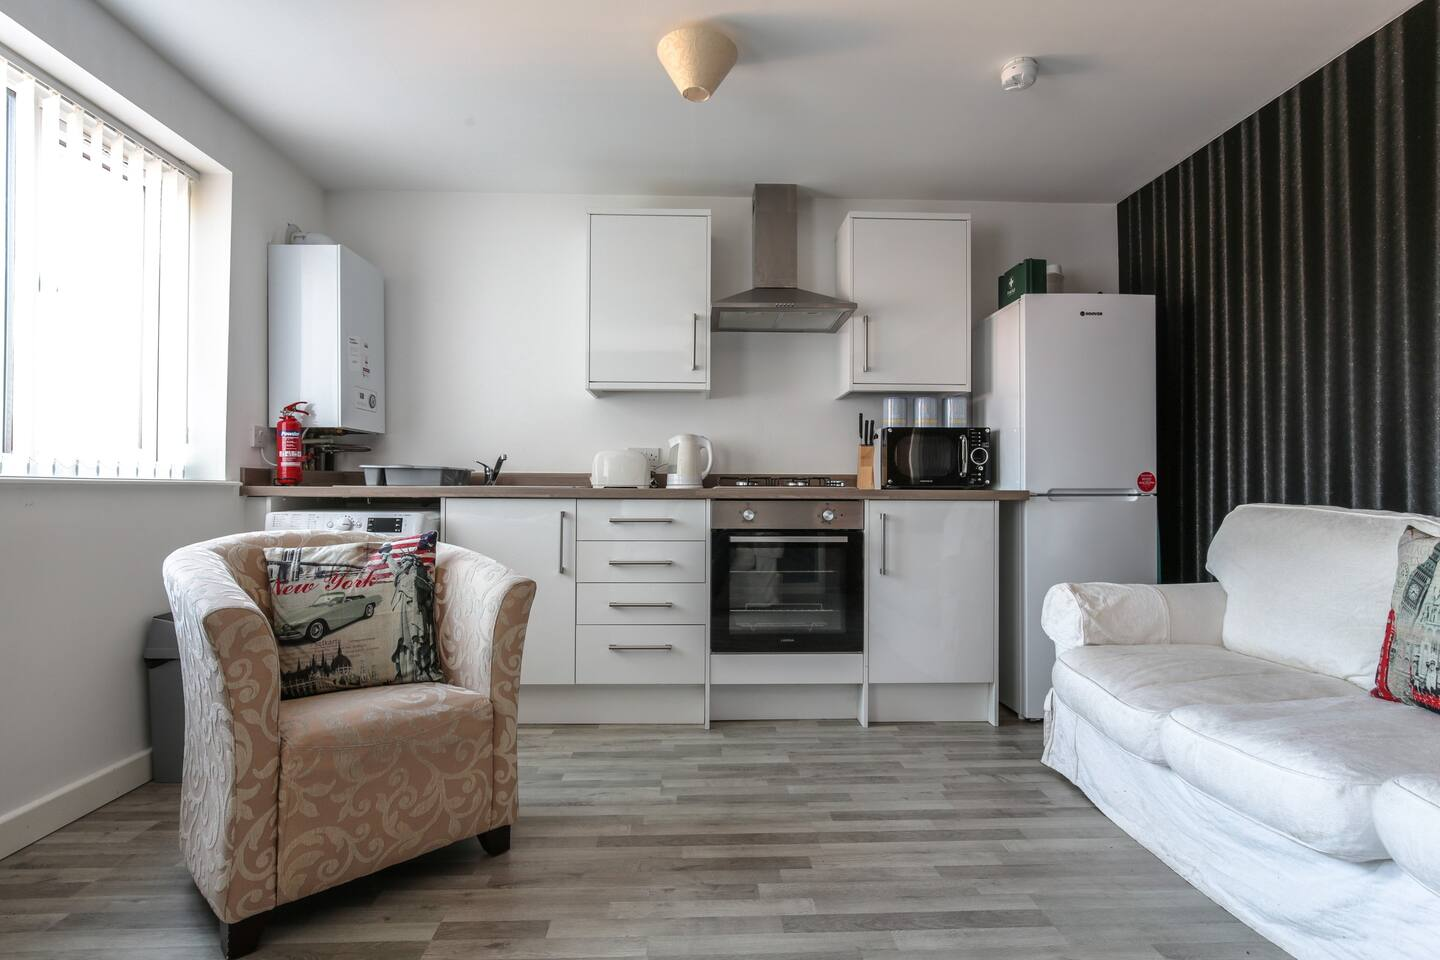 Kitchen at Young House, Vauxhall, Liverpool - Citybase Apartments